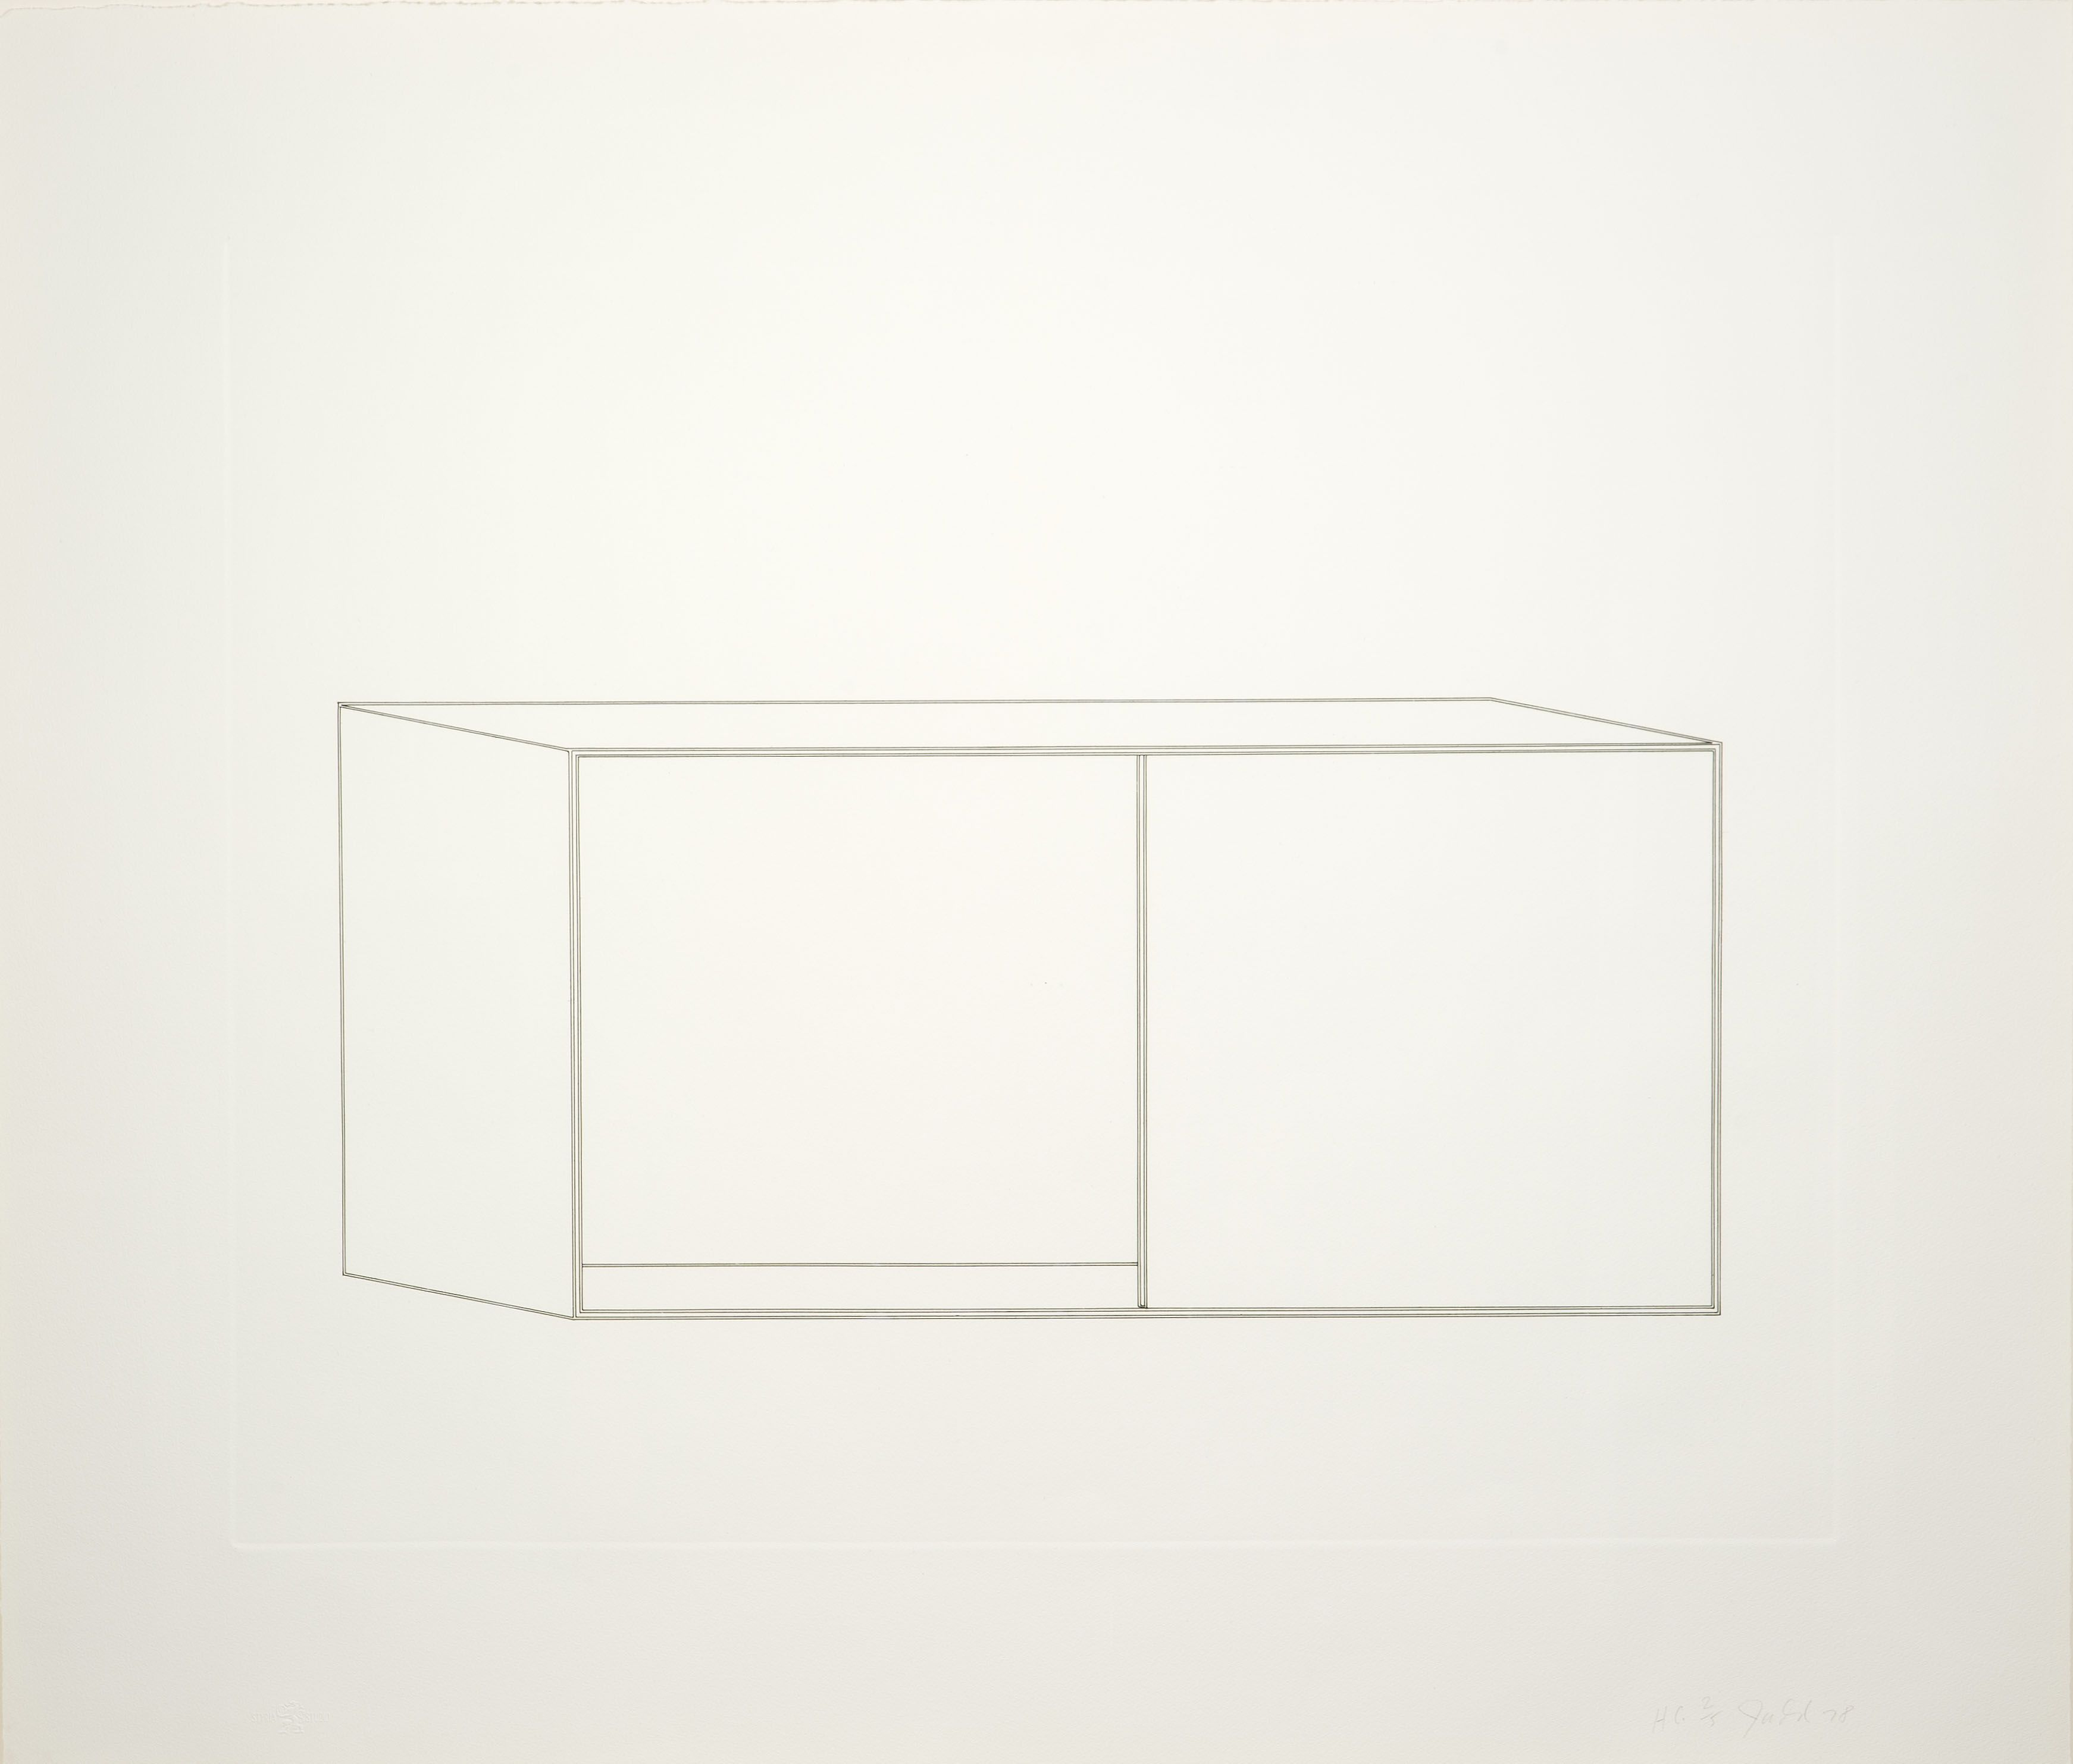 Donald Judd, Untitled, H.C. 2/5, 1977-78, Etching in black on paper, 29 1/4 x 34 1/4 inches